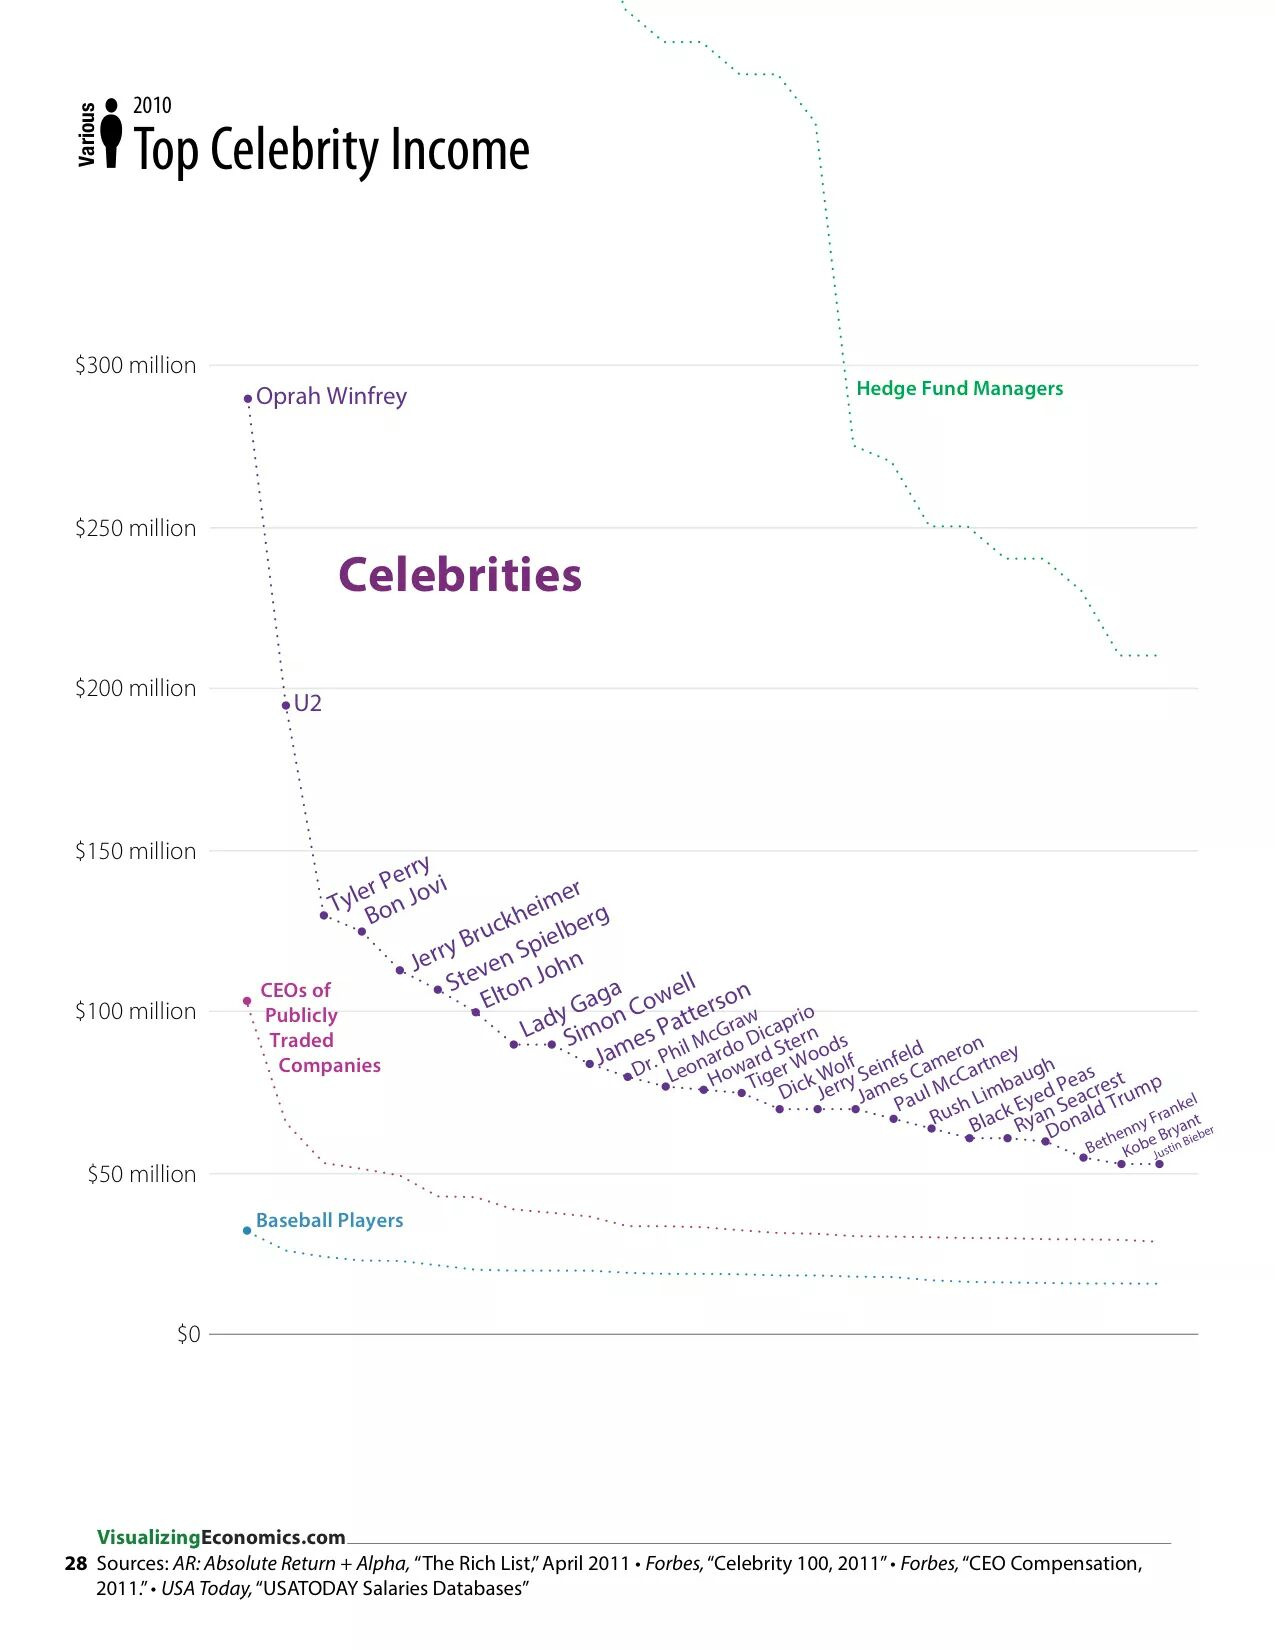 Celebrities get a pass from #occupy on their top 0.1% membership